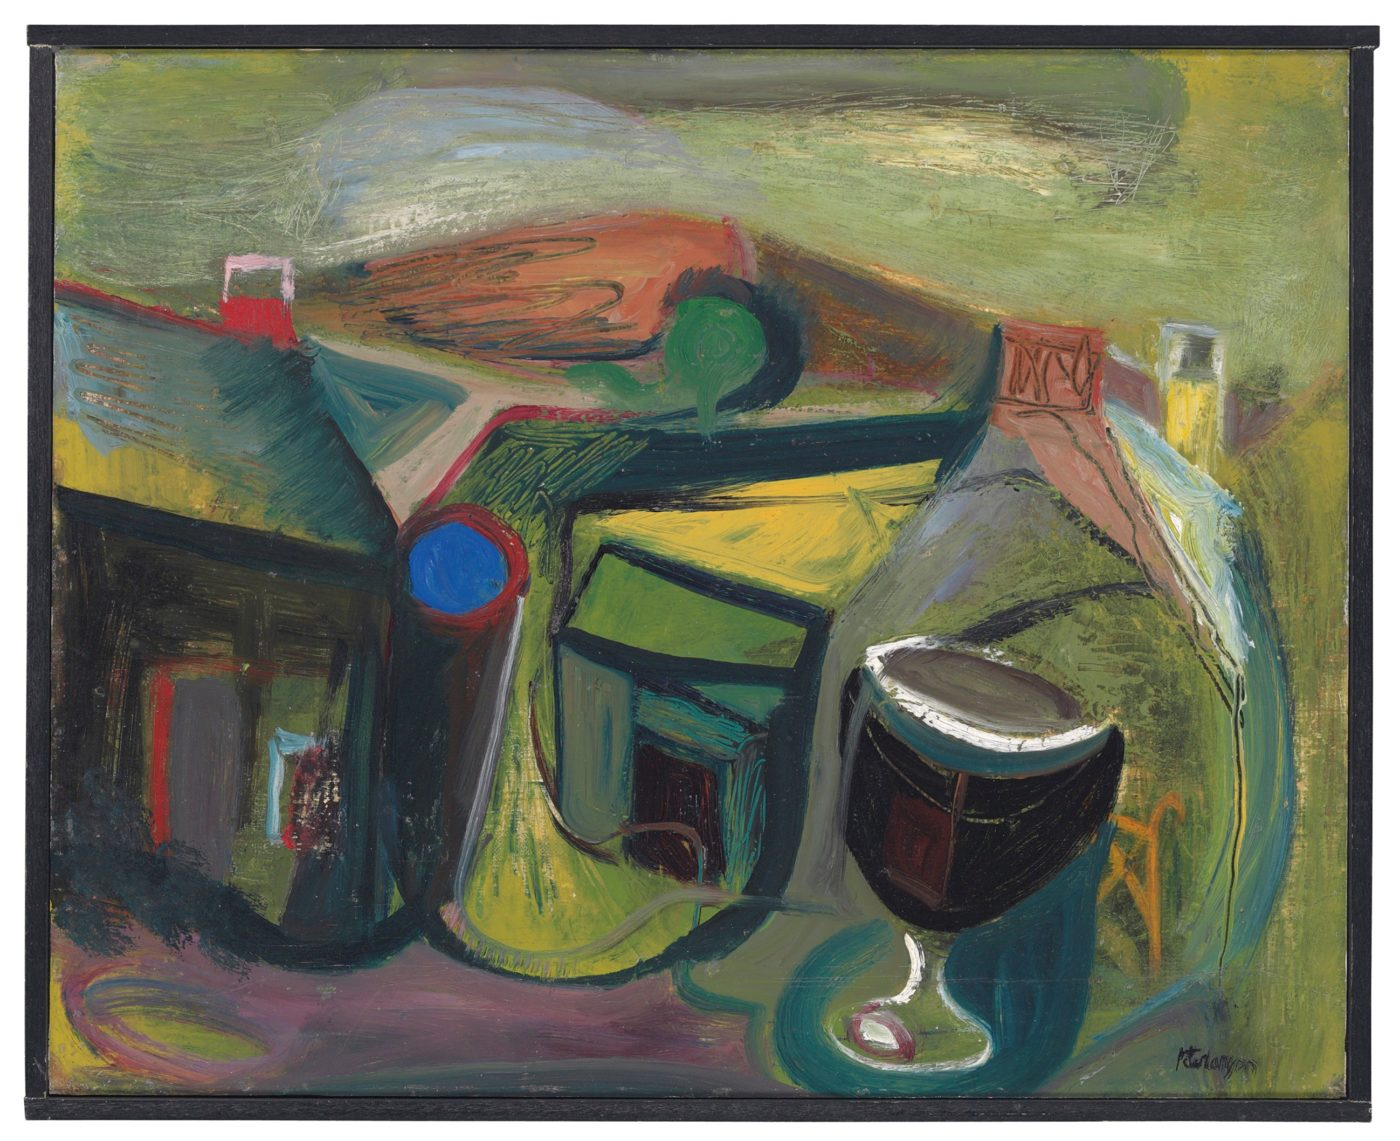 Peter Lanyon (1918-1964), Landscape and Cup (Annunciation)